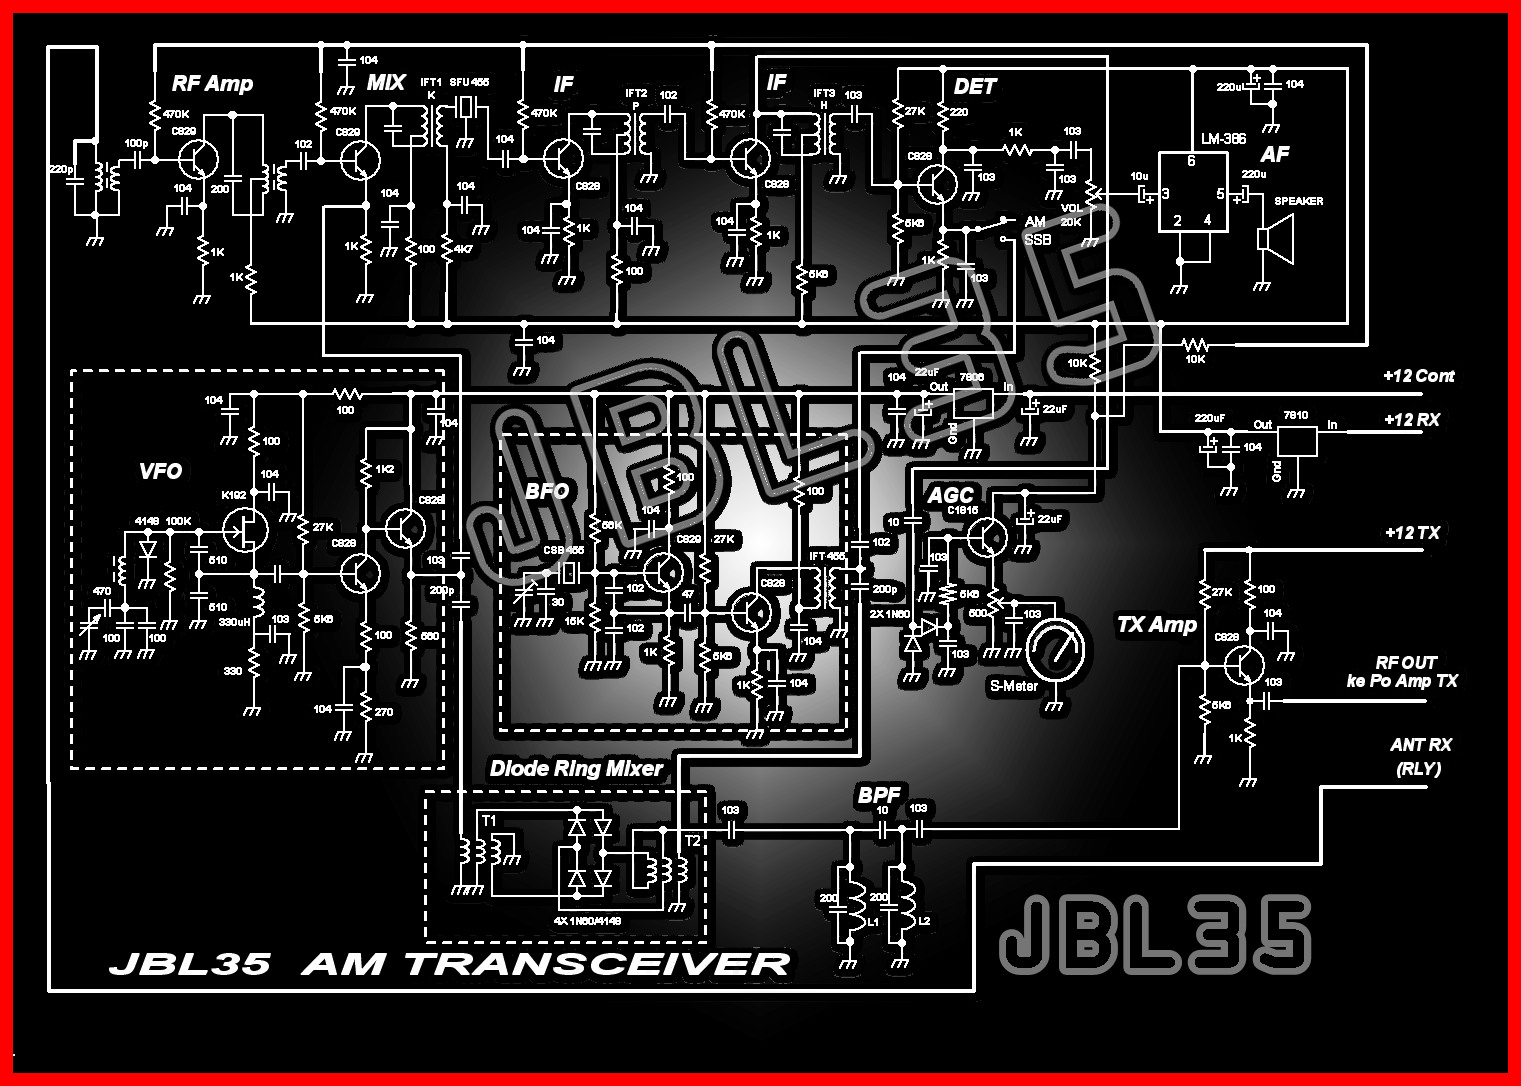 Tibet Sound System 2014 400watt Irfp448 Power Amplifier Circuit Diagram Am Transceiver